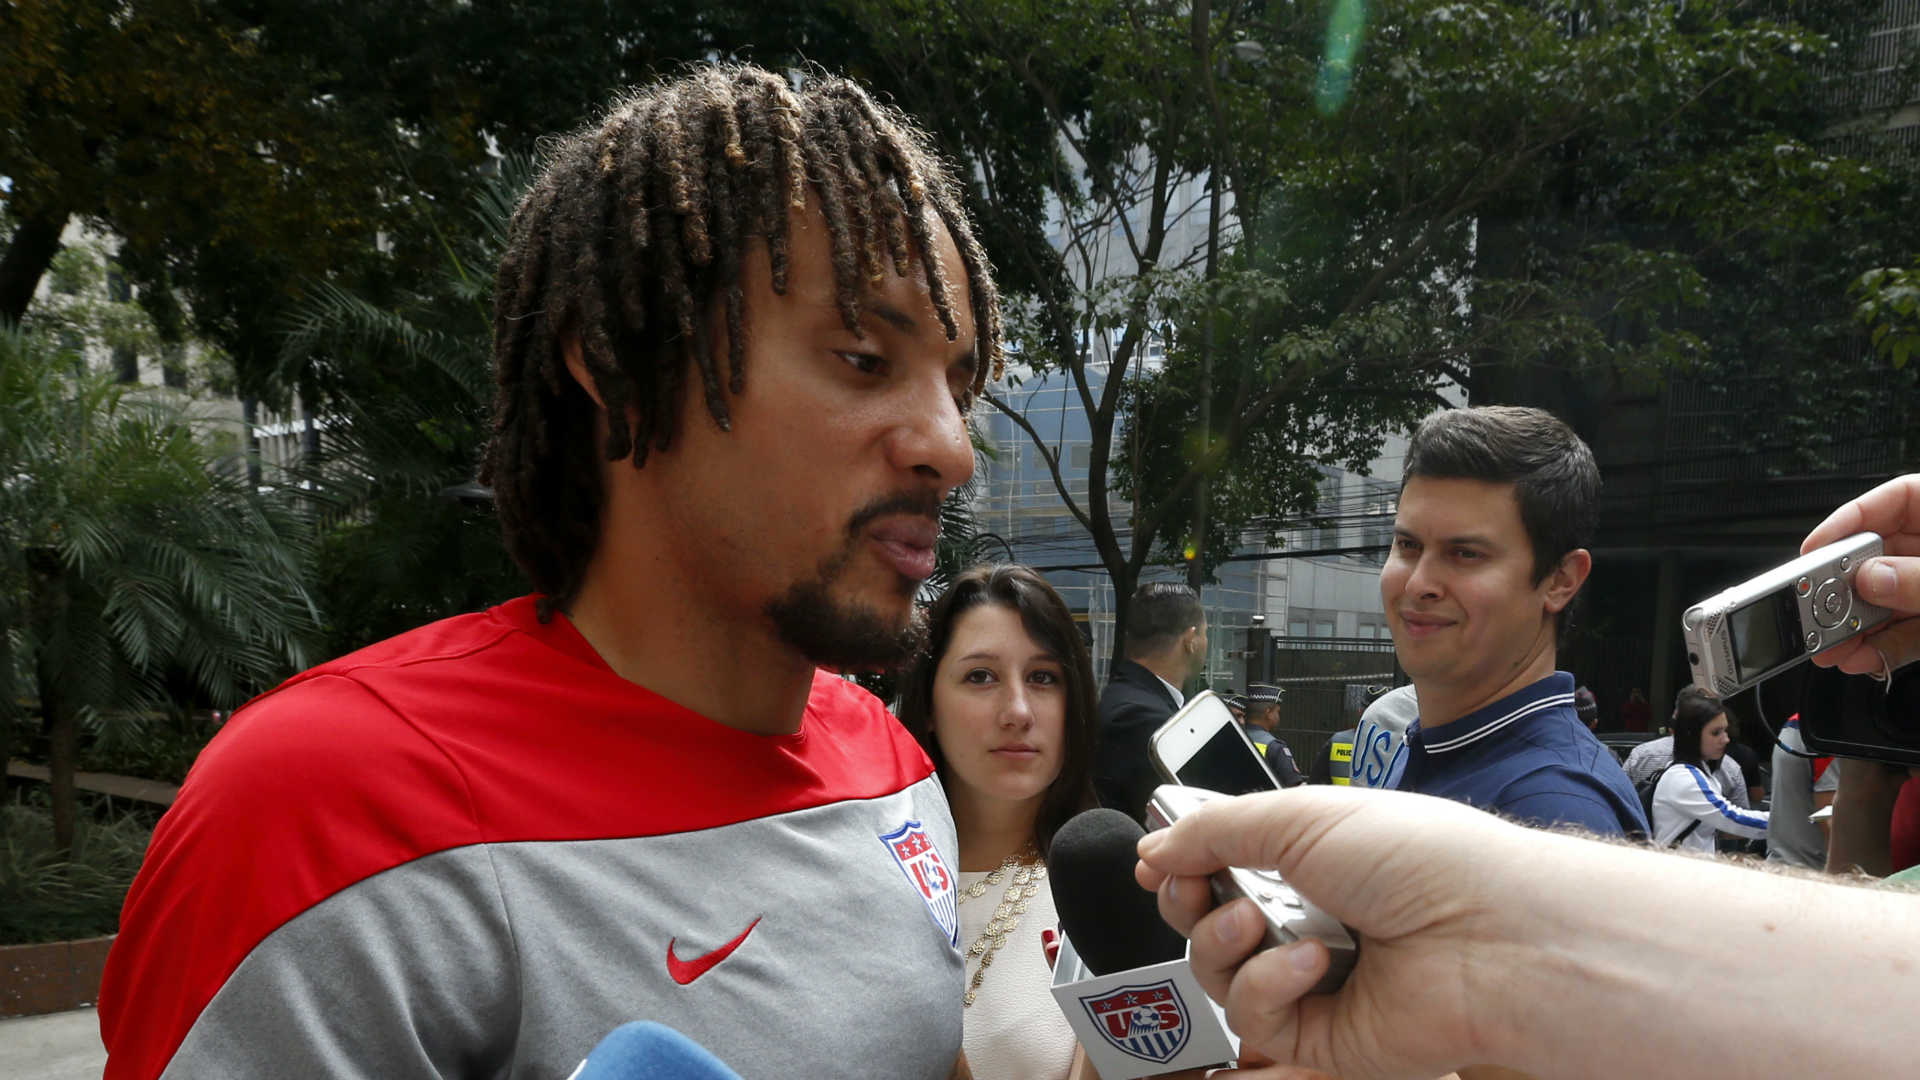 Jermaine Jones-061414-AP-FTR.jpg